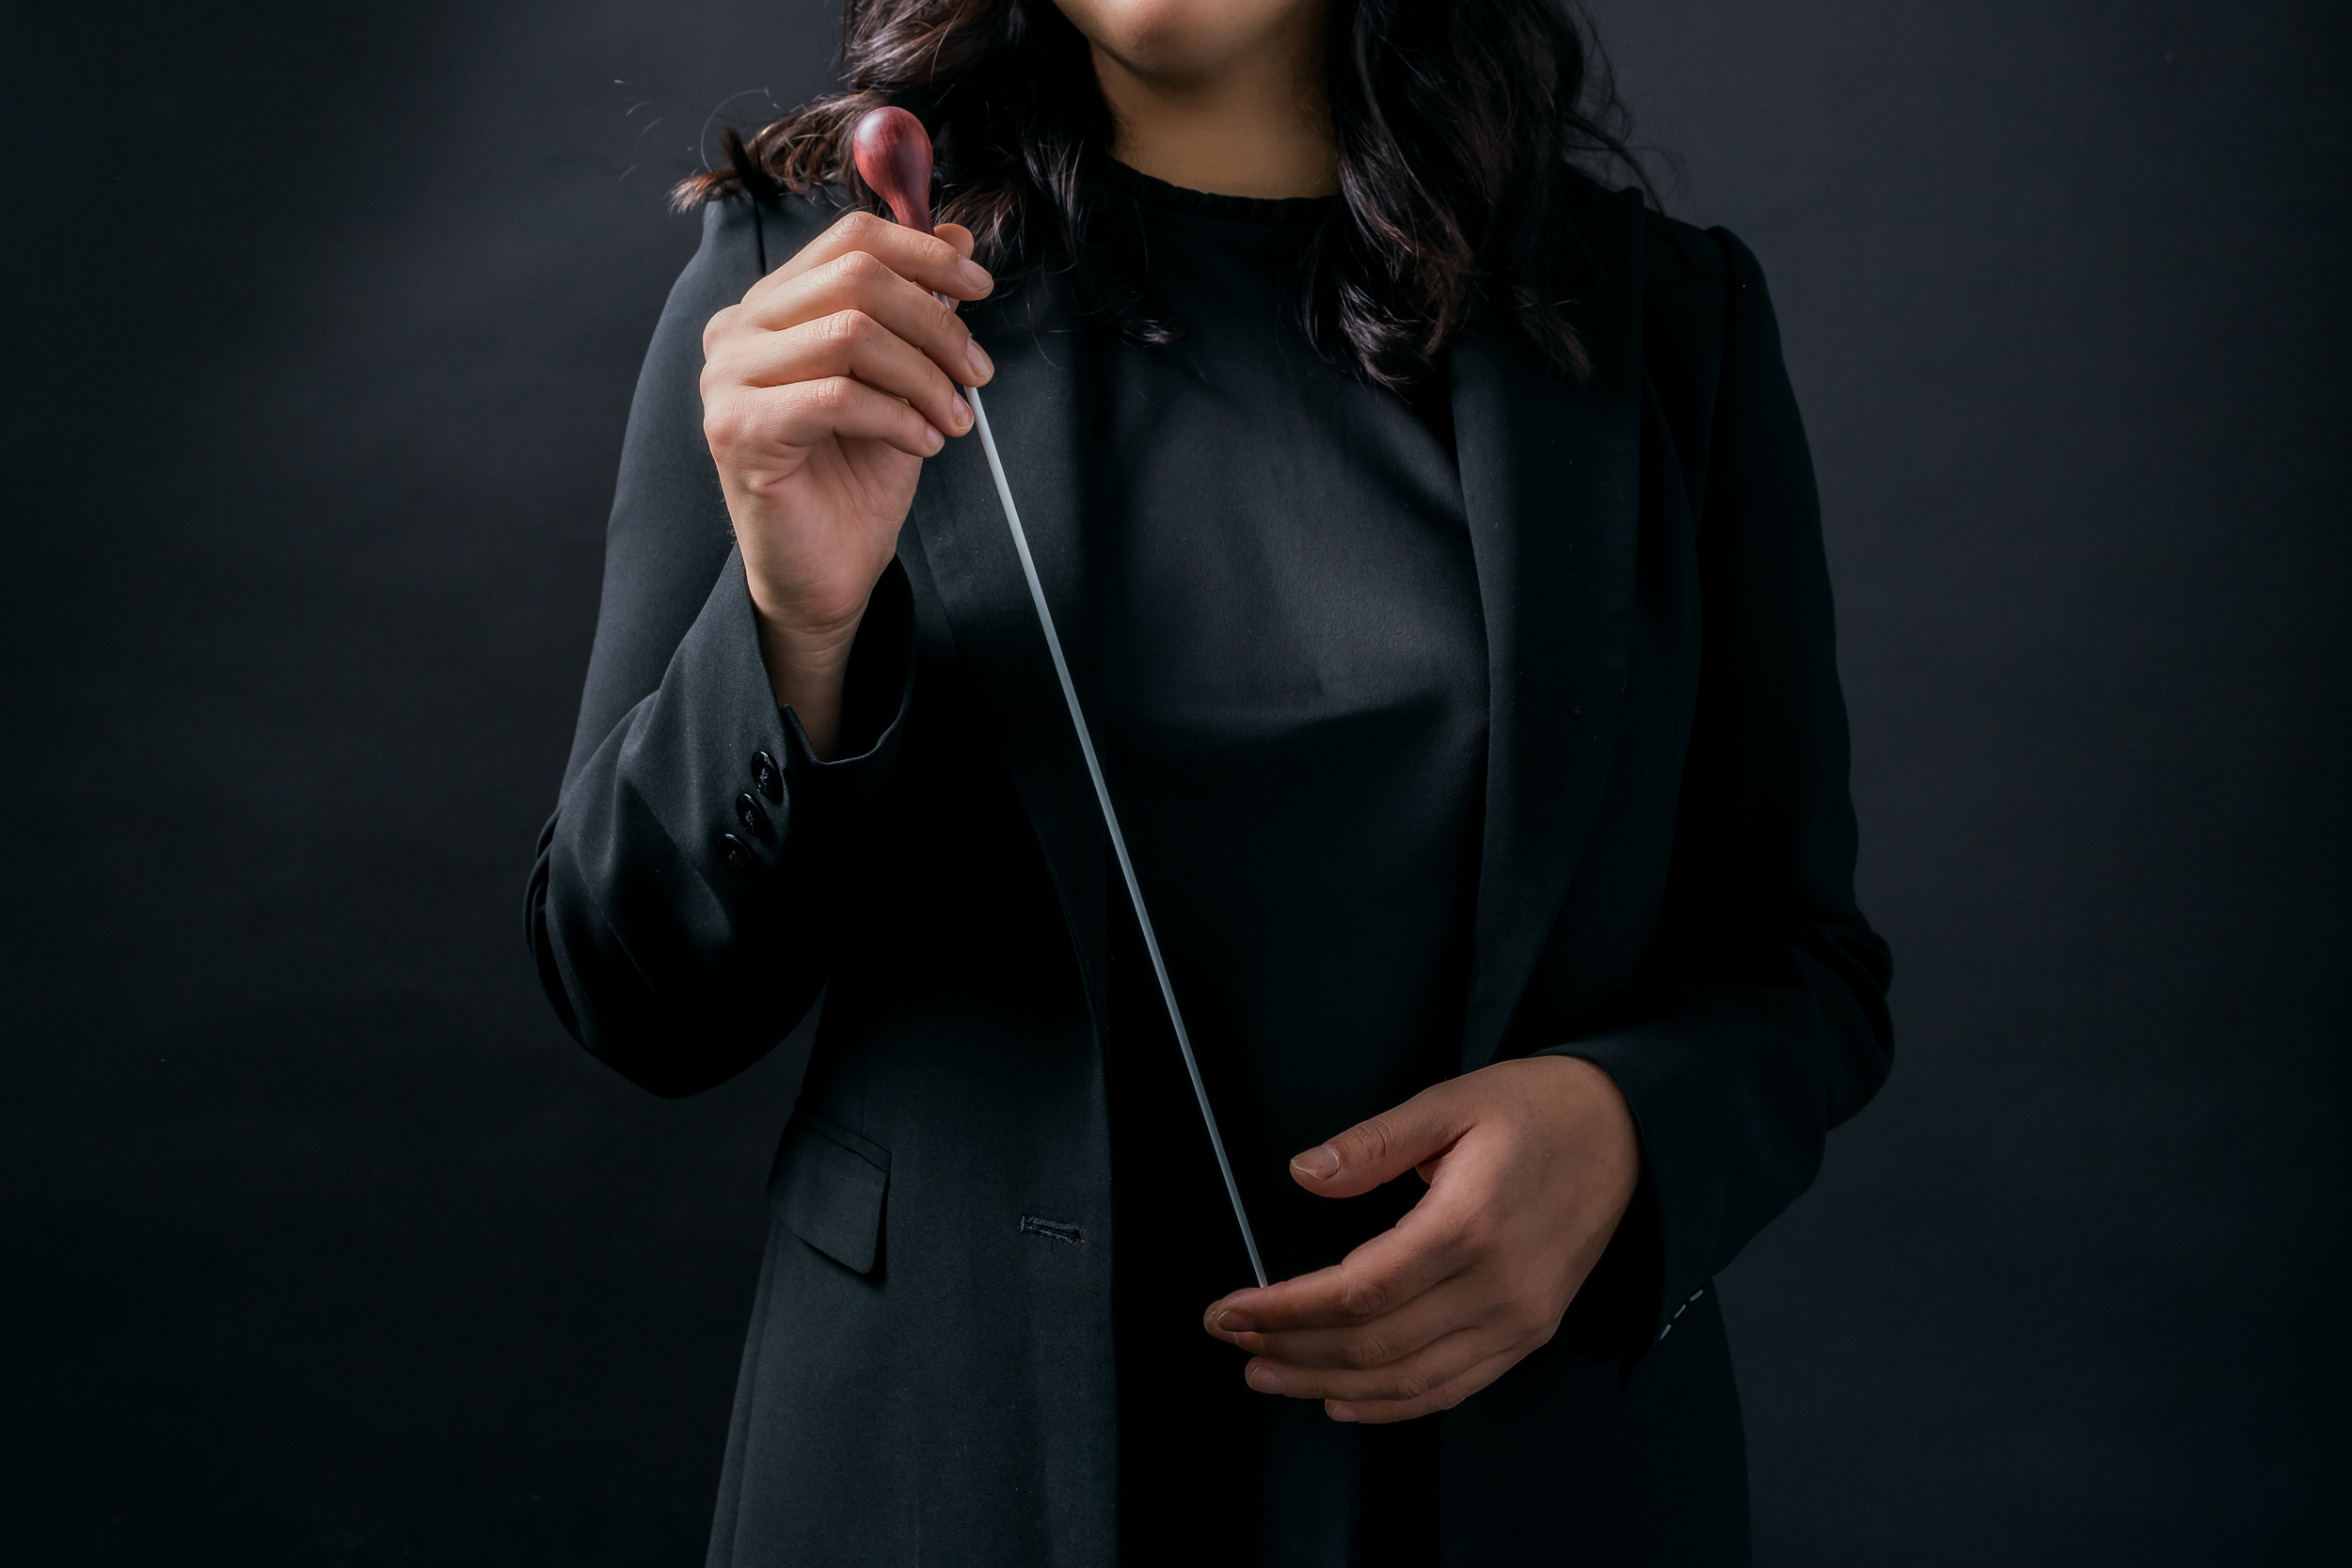 Valery Saul Conductor Professional Headshots Portrait